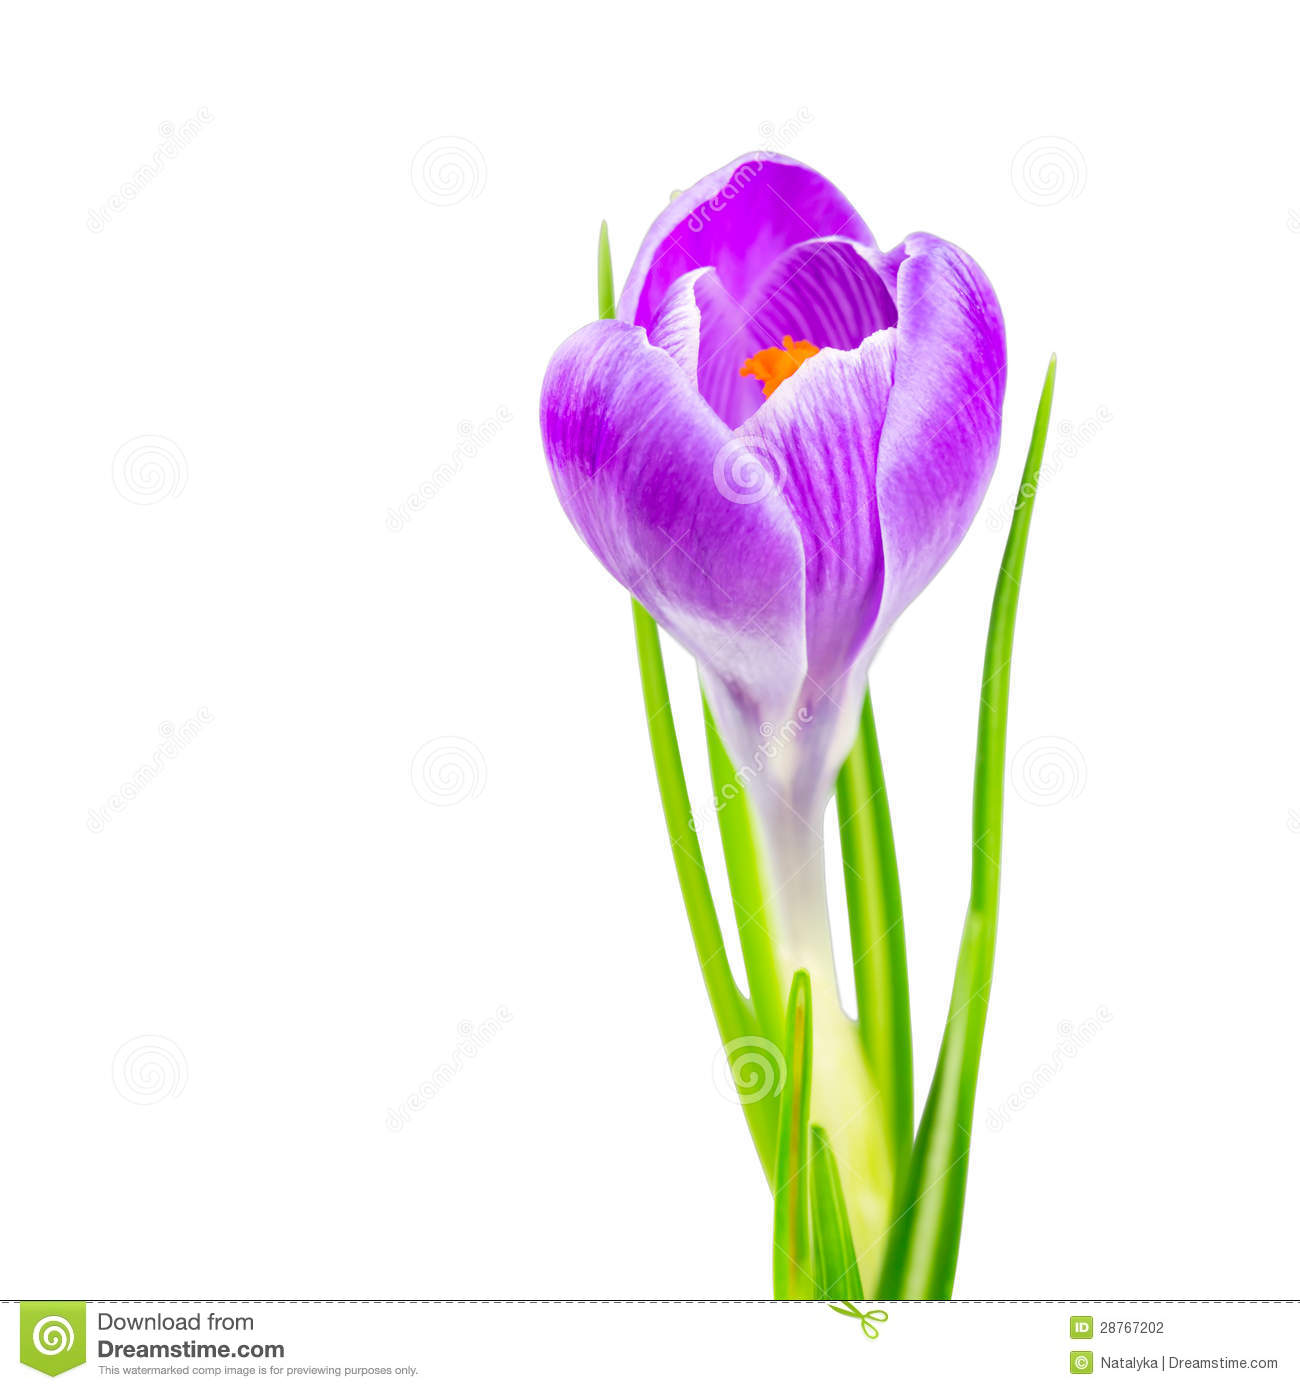 Blooming spring crocus flower stock photo image of flowers download blooming spring crocus flower stock photo image of flowers botanical 28767202 mightylinksfo